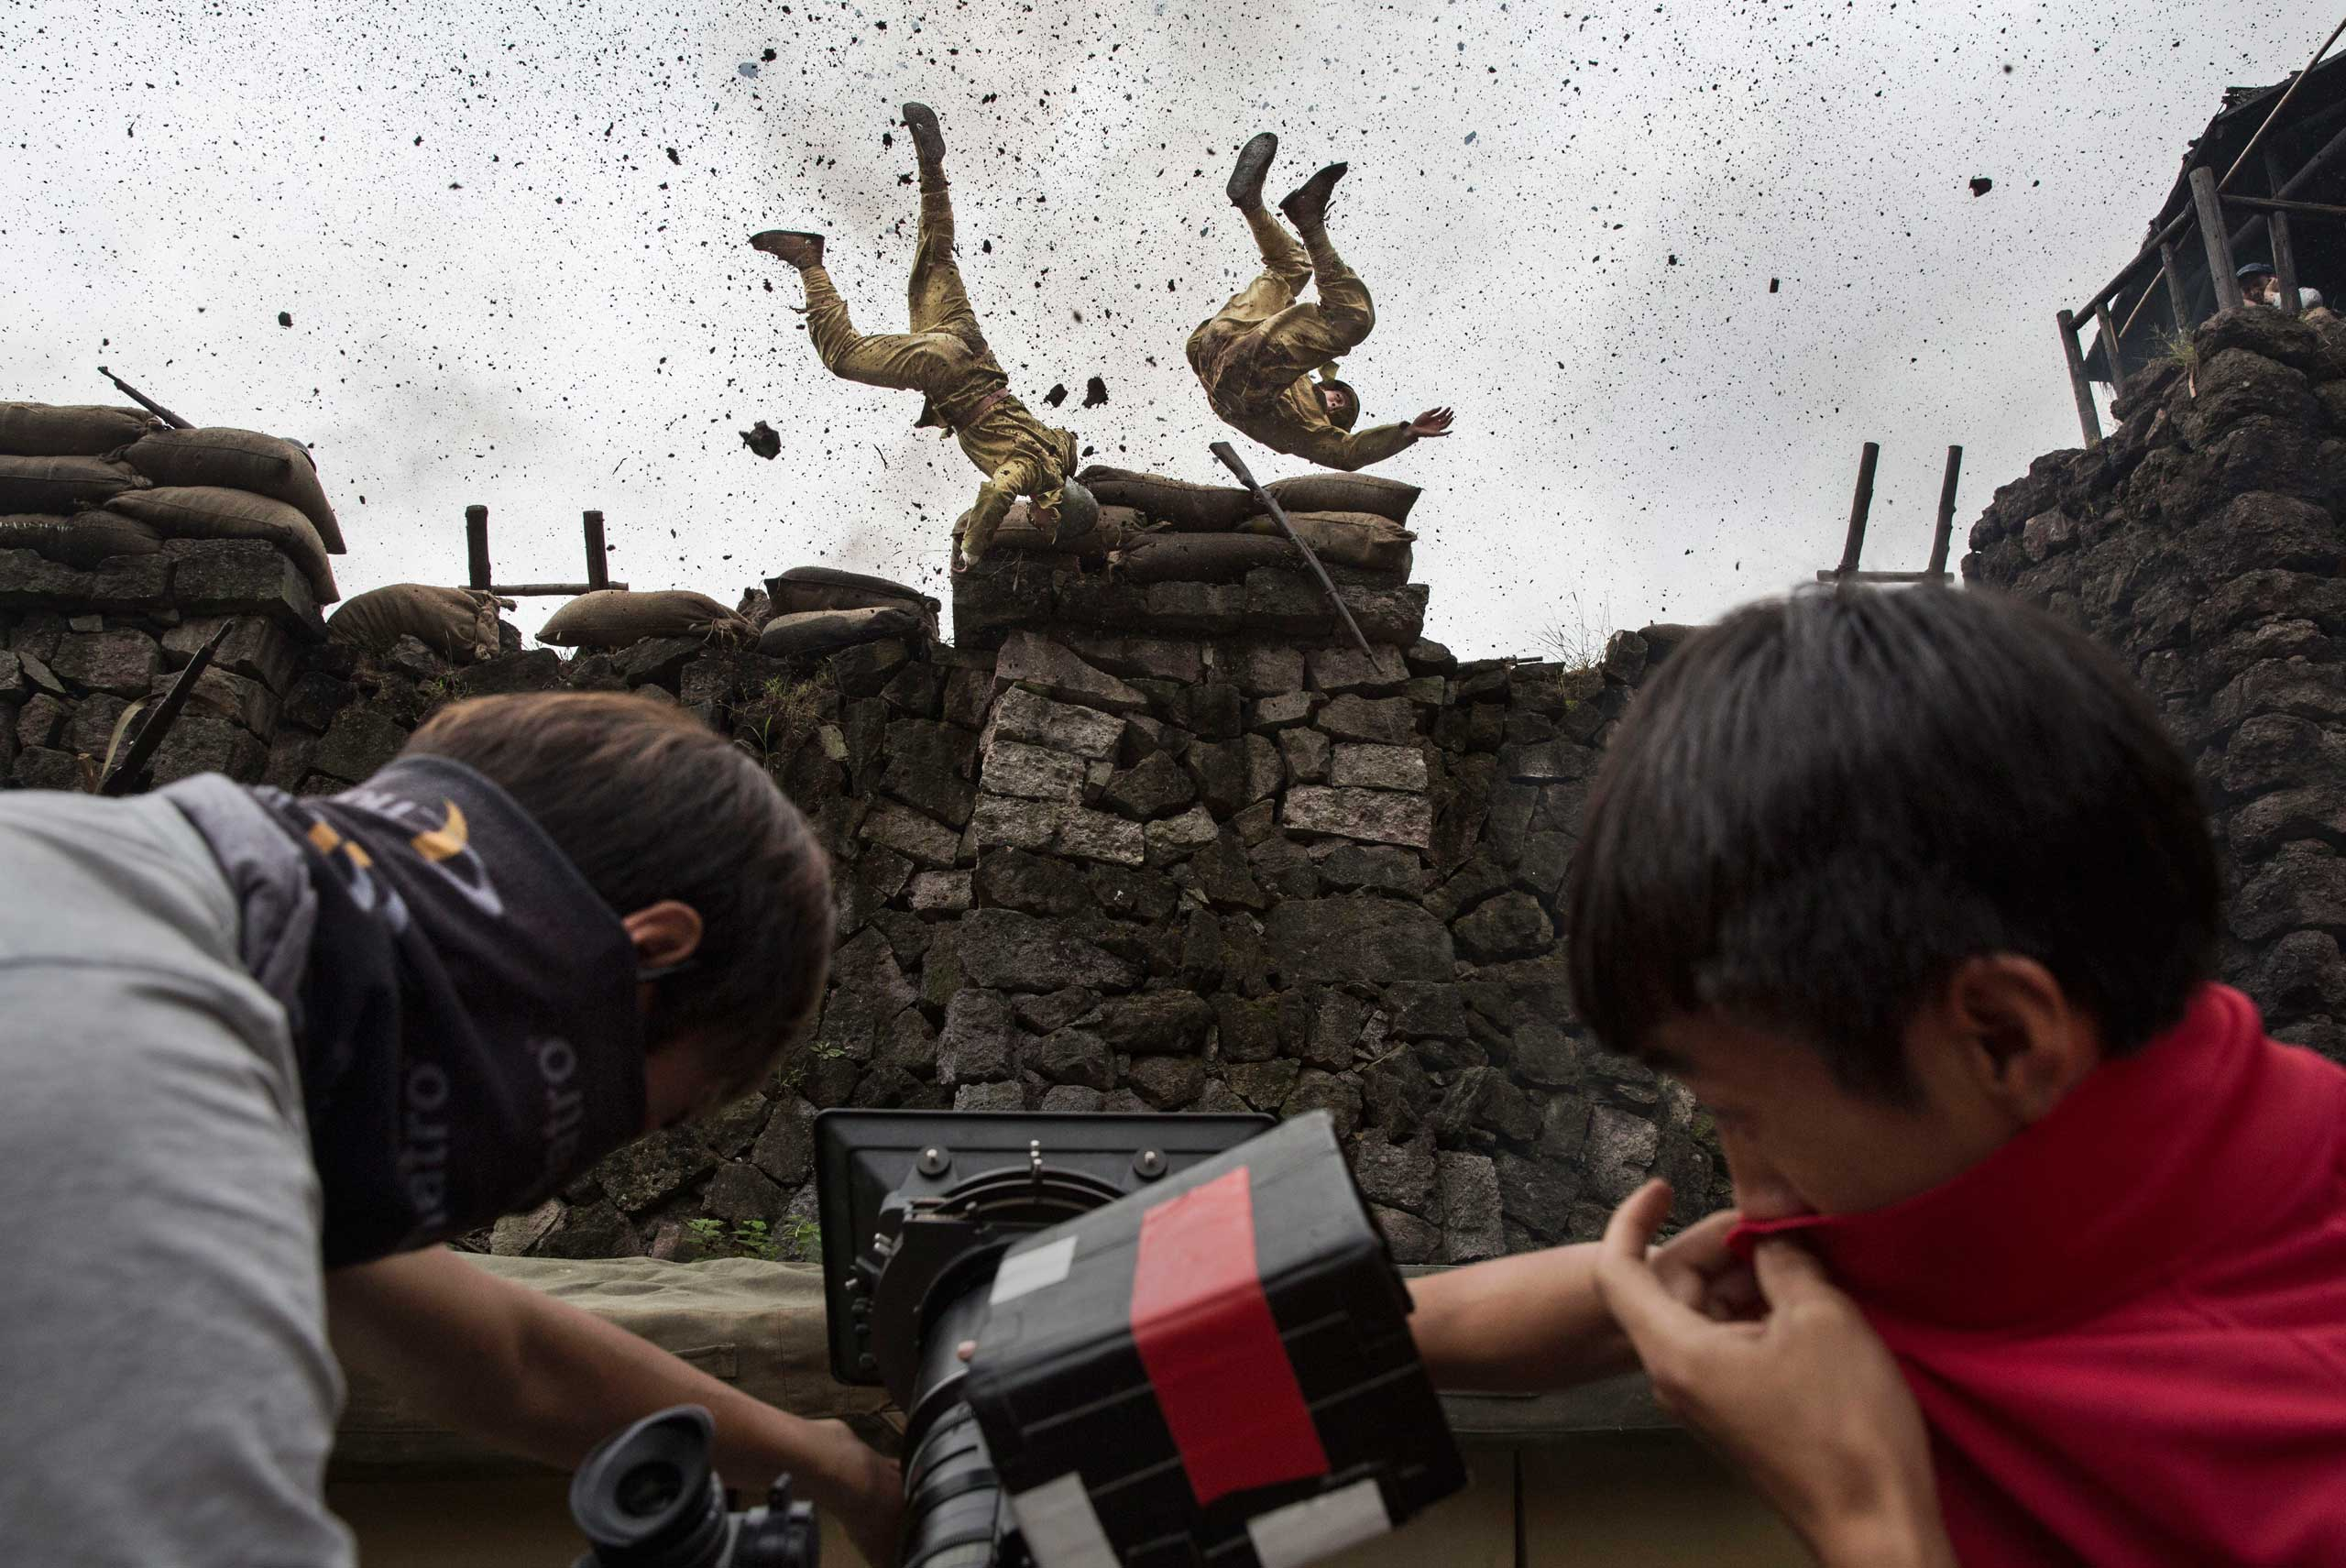 Chinese actors playing Japanese soldiers are blown off a wall in an explosion during the filming of the series  The Last Noble,  set during the second Sino-Japanese War on in Fangyan, China. Seventy years after the end of World War II, there is still widespread resentment across China toward Japan and its wartime misdeeds. It is estimated that hundreds of films depicting China's victory over Japan in 1945 are produced on the mainland every year and the genre remains one of the country's most popular entertainment draws. Aug. 13, 2015.